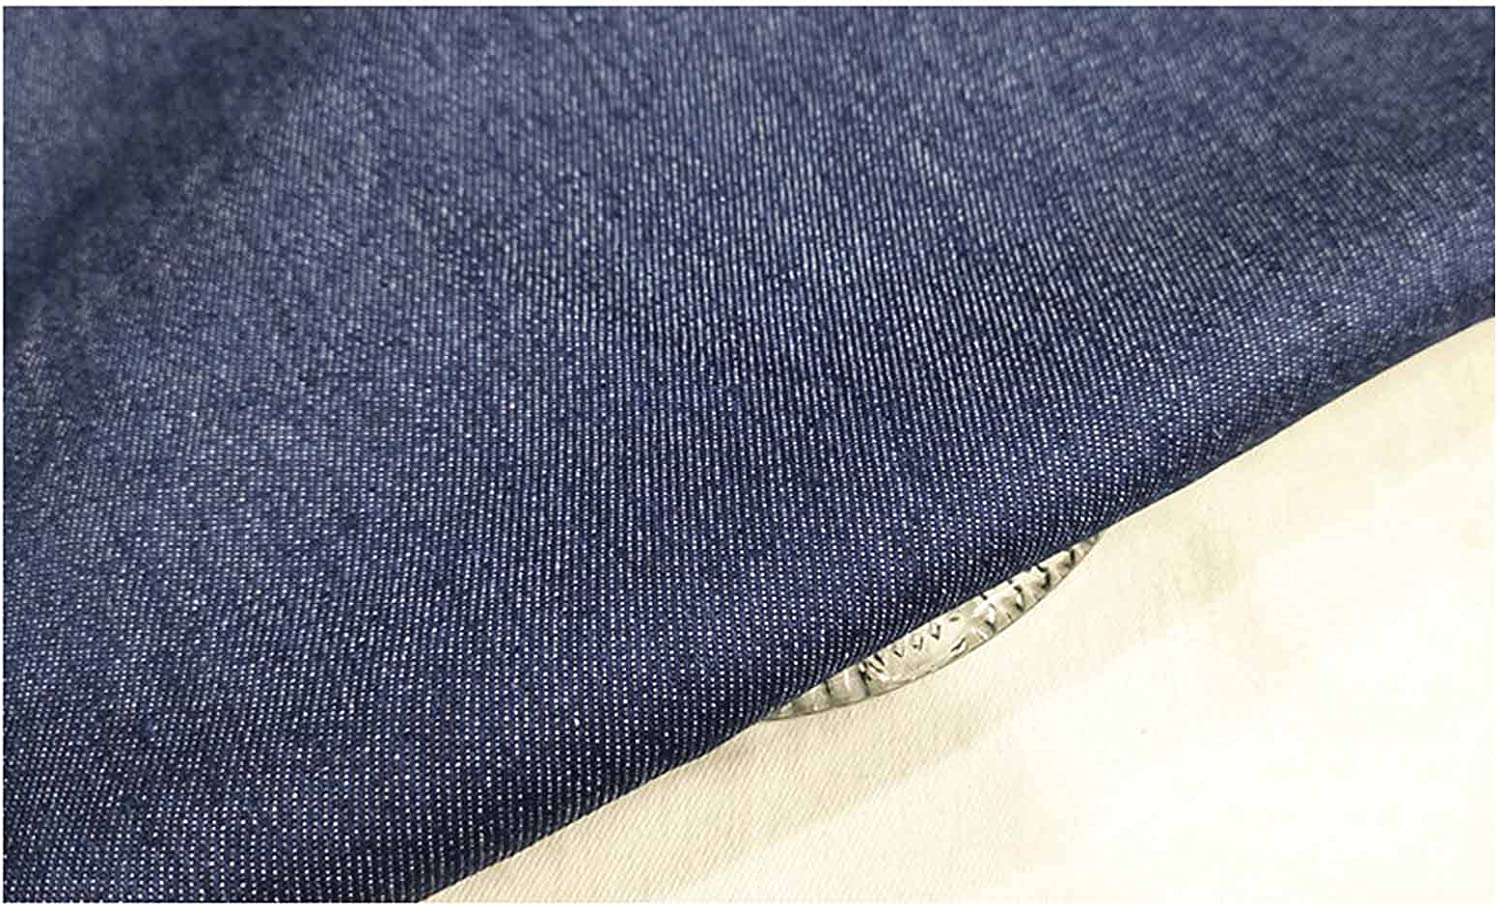 GLUDGOAT Washed Denim Fabric Thick Discount is also Popular standard underway T-Shirt Dress Materi for Soft